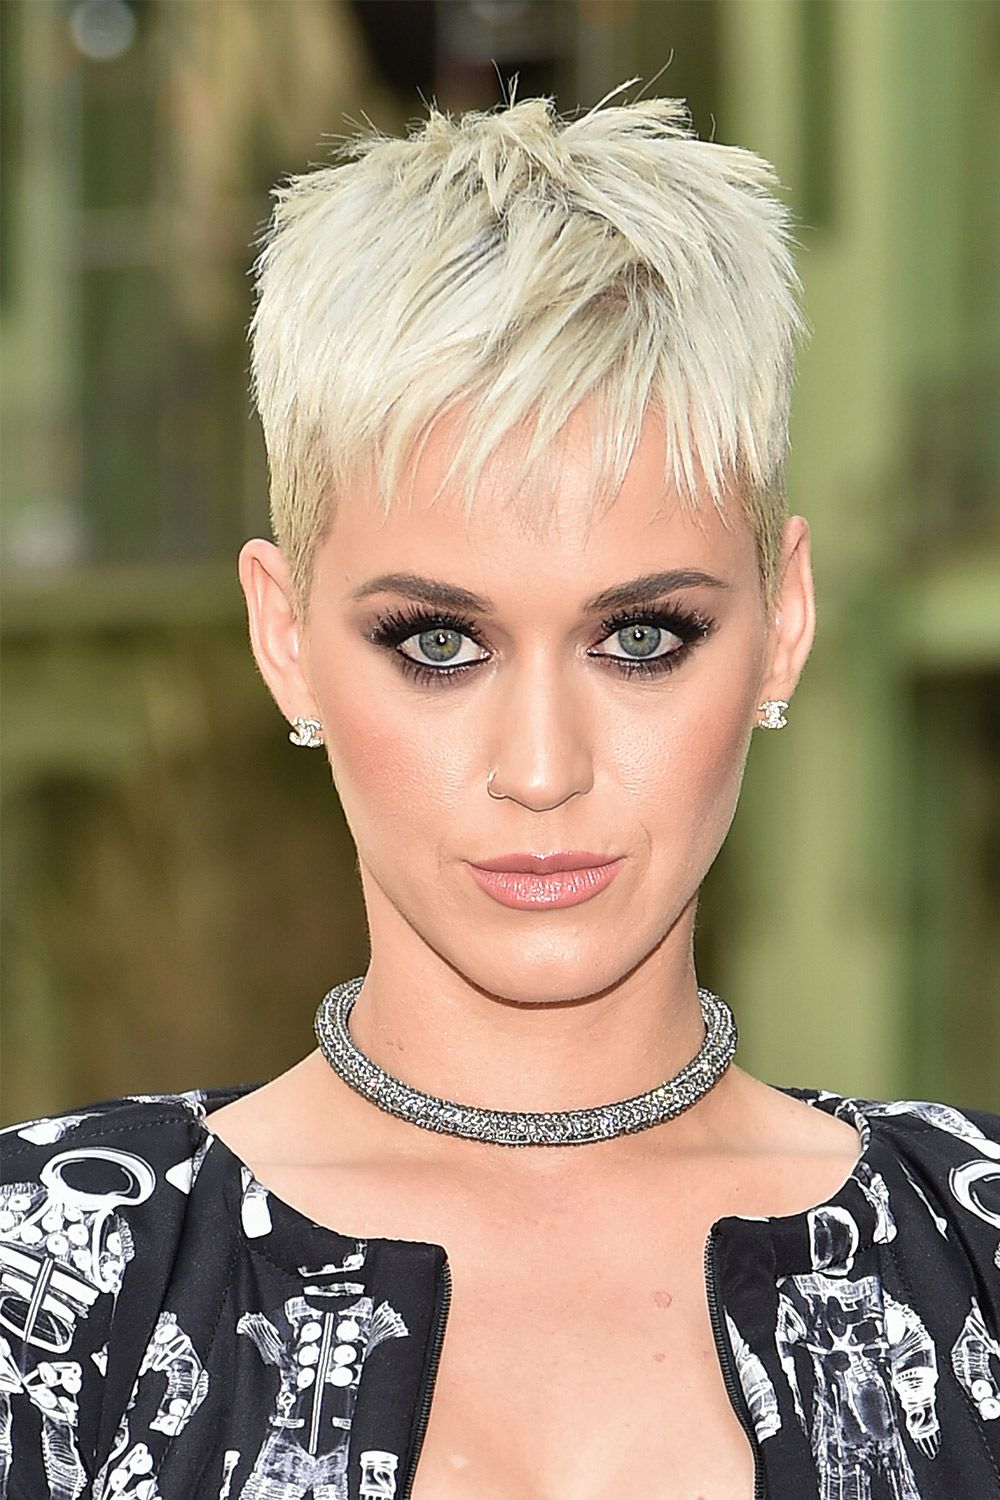 katy-perry-hair-1518123738